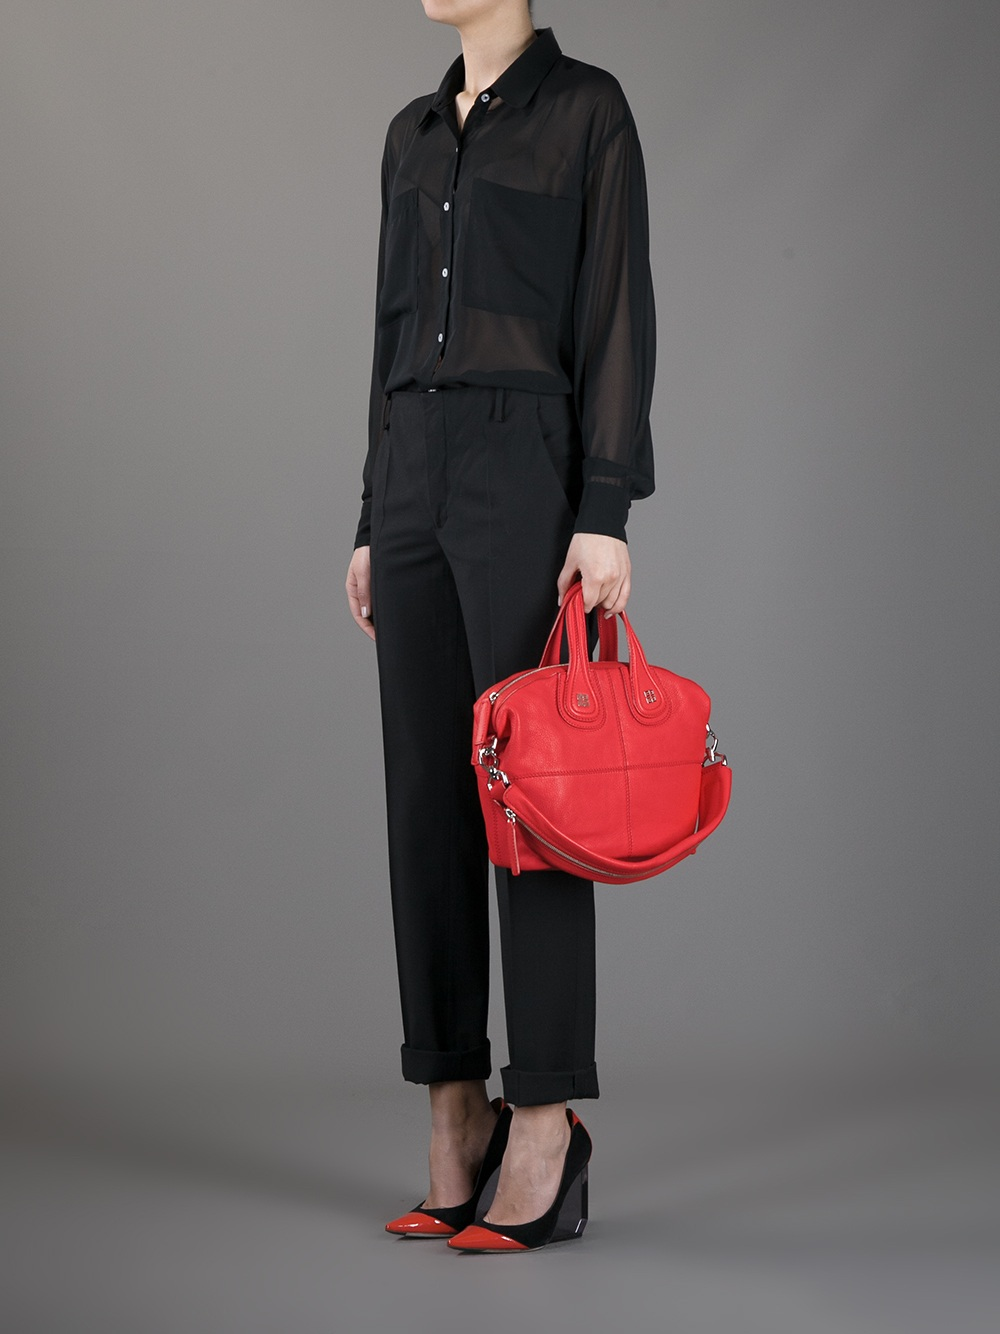 447eba27ea49 Gallery. Previously sold at  Farfetch · Women s Givenchy Nightingale  Women s Shopper Bags ...